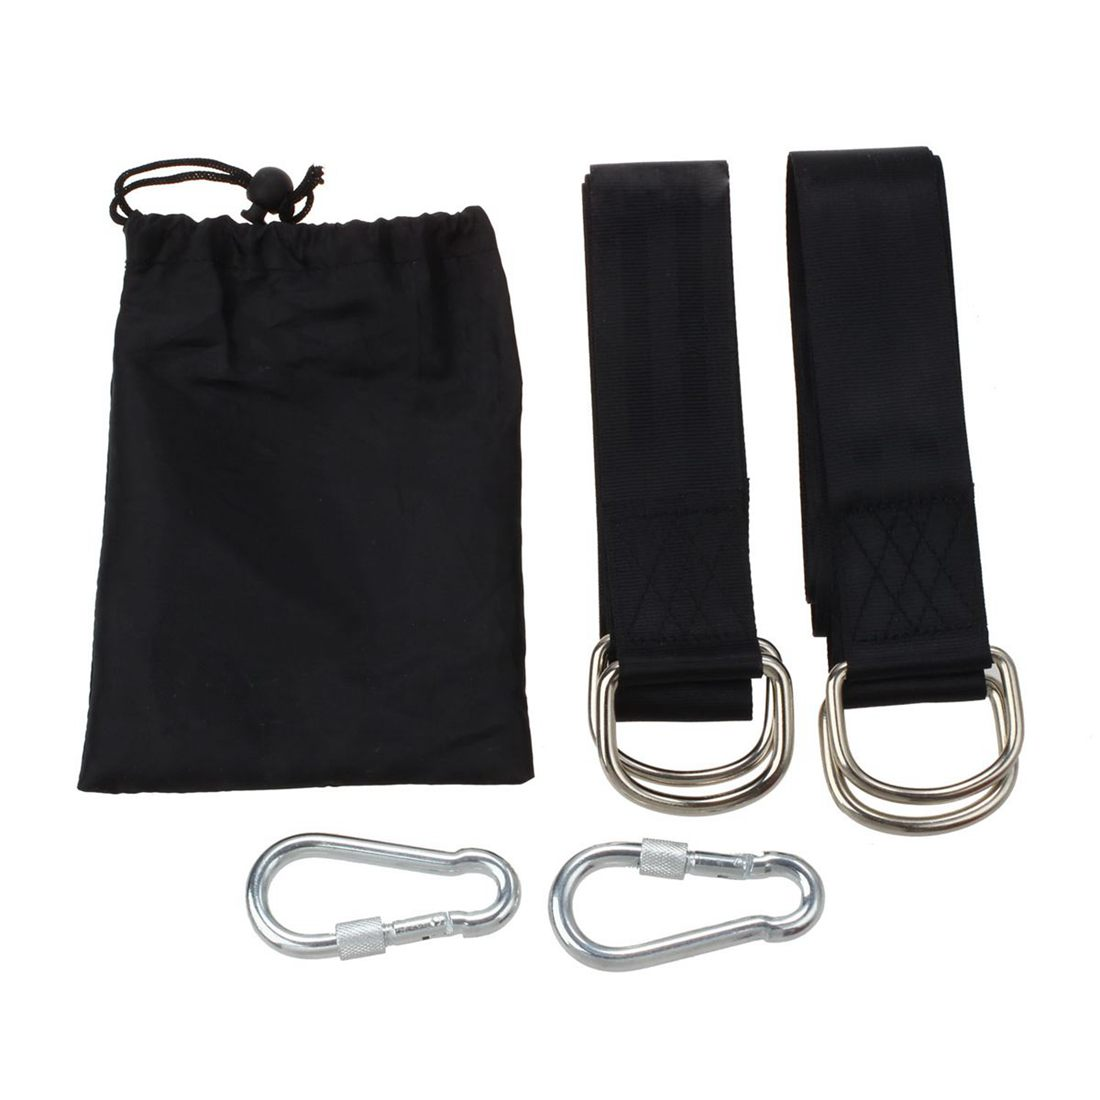 Hot Sale Tree Swing Hanging Kit, Two 59 inch Tree Straps with Safer Lock Snap Carabiner Hooks, Perfect for Tree Swing & Hammoc tree